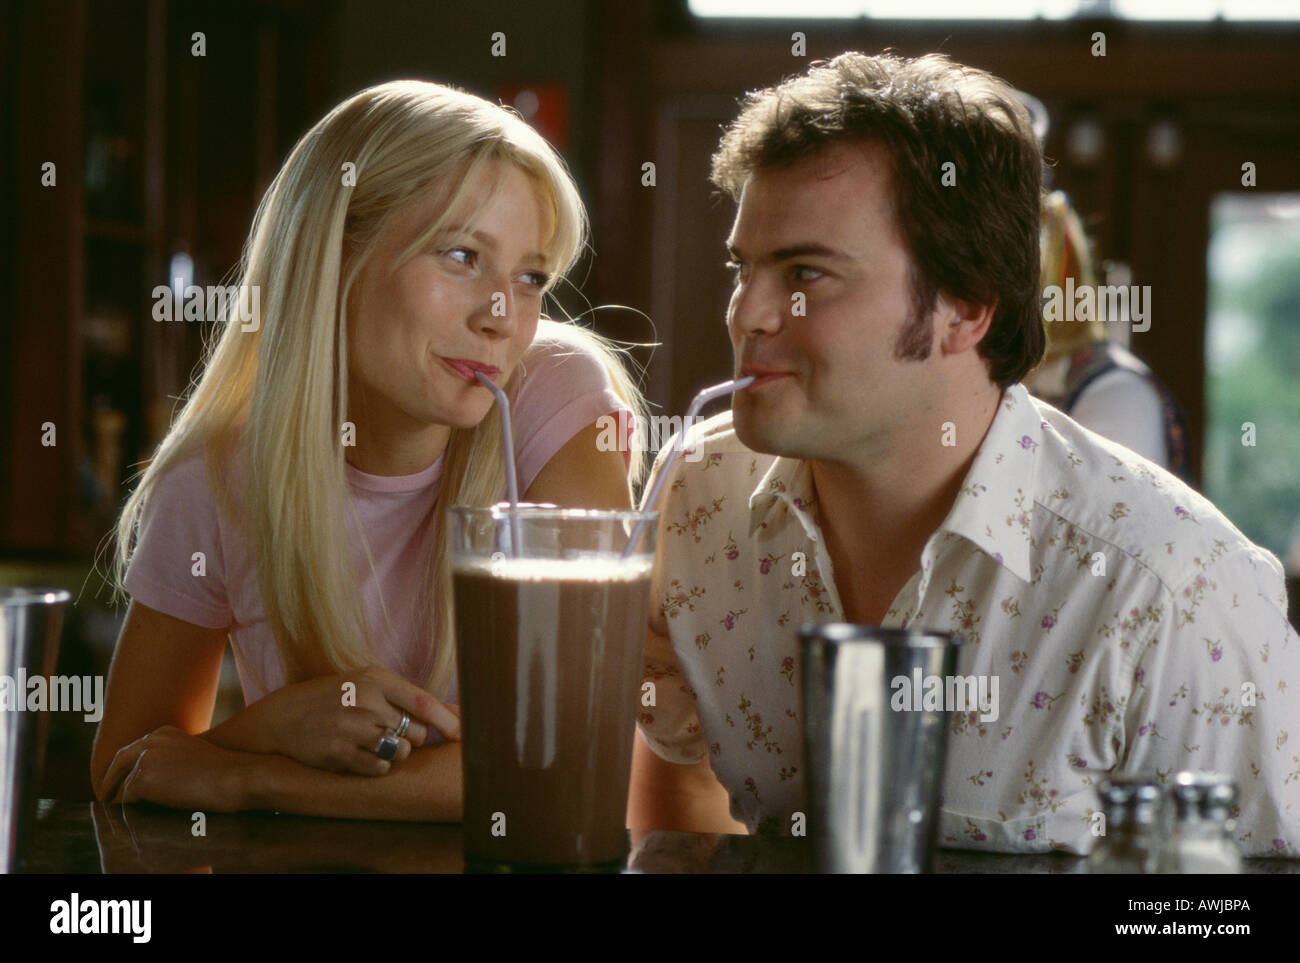 FLACHER HAL 2001 Twentieth Century Fox Film mit Gwyneth Paltrow und Jack Black Stockbild